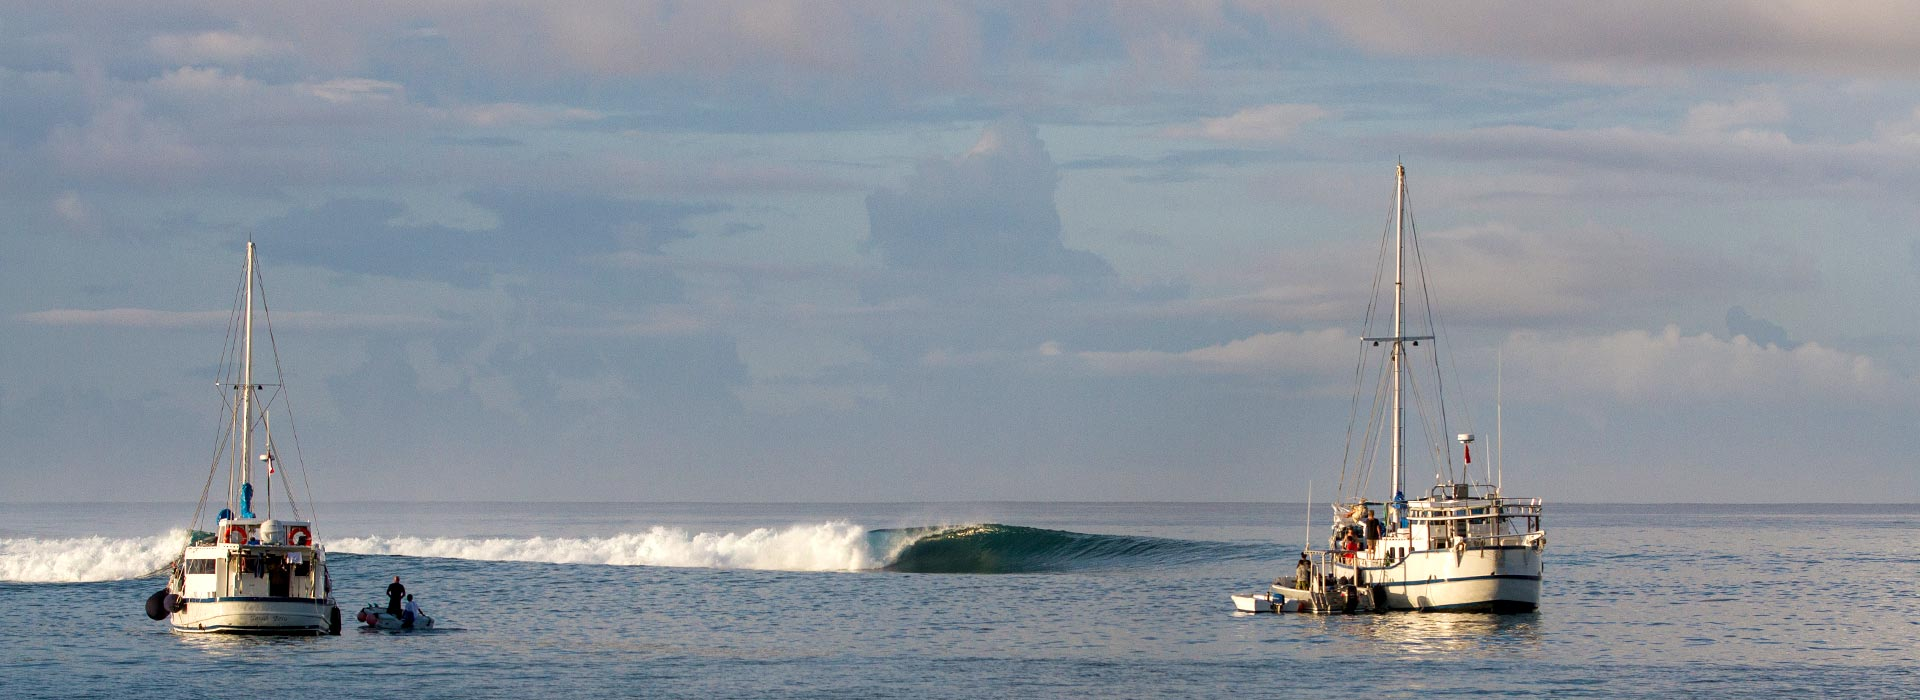 nomad-surf-charters-6